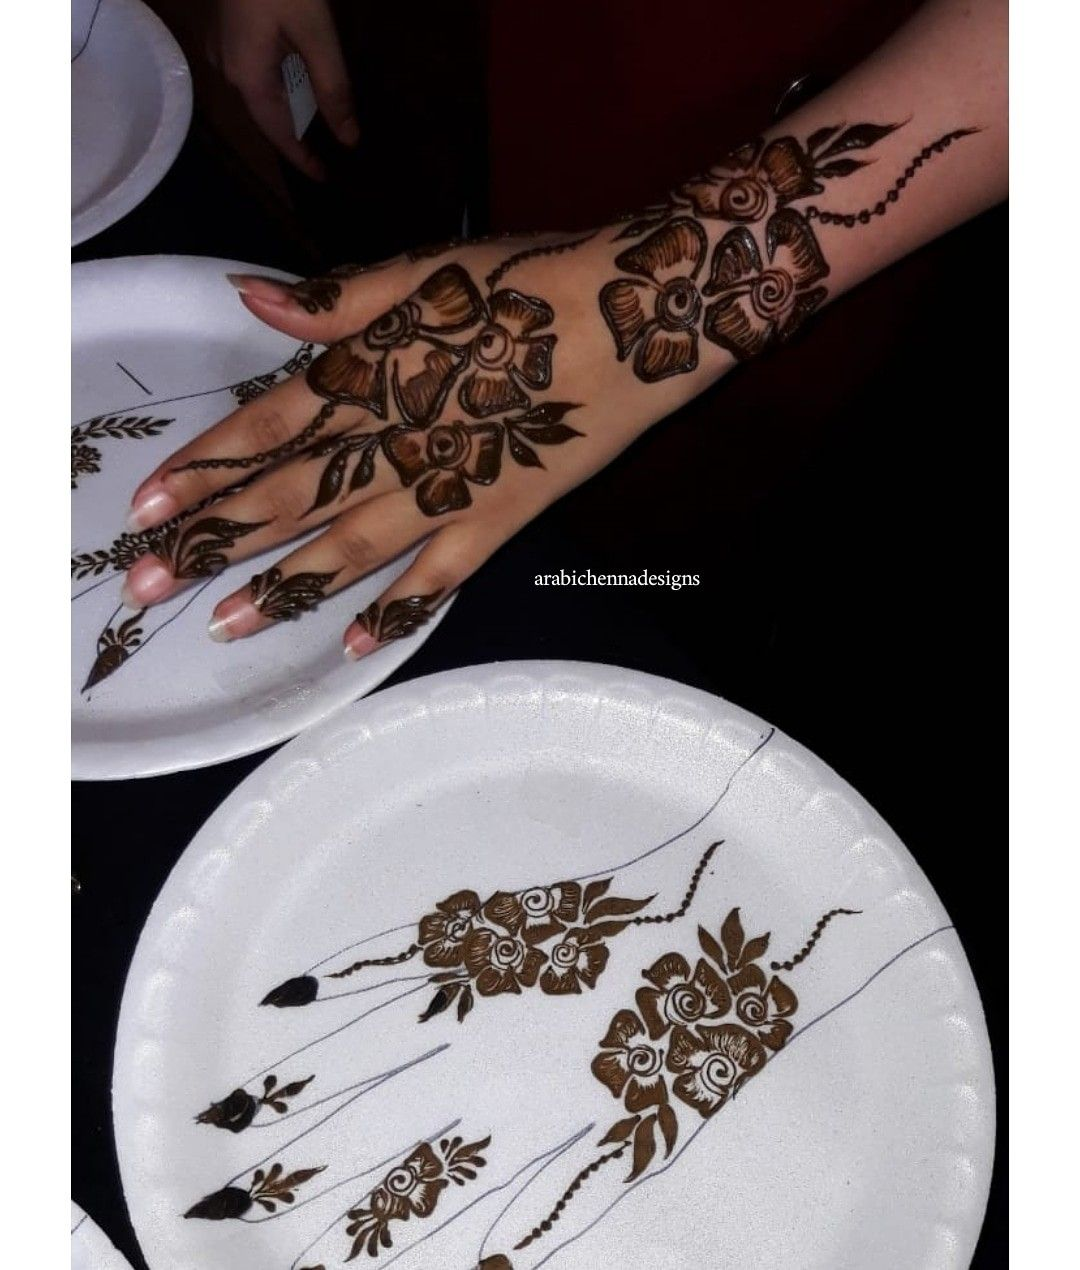 Hello there get your henna done with me I'm a professional